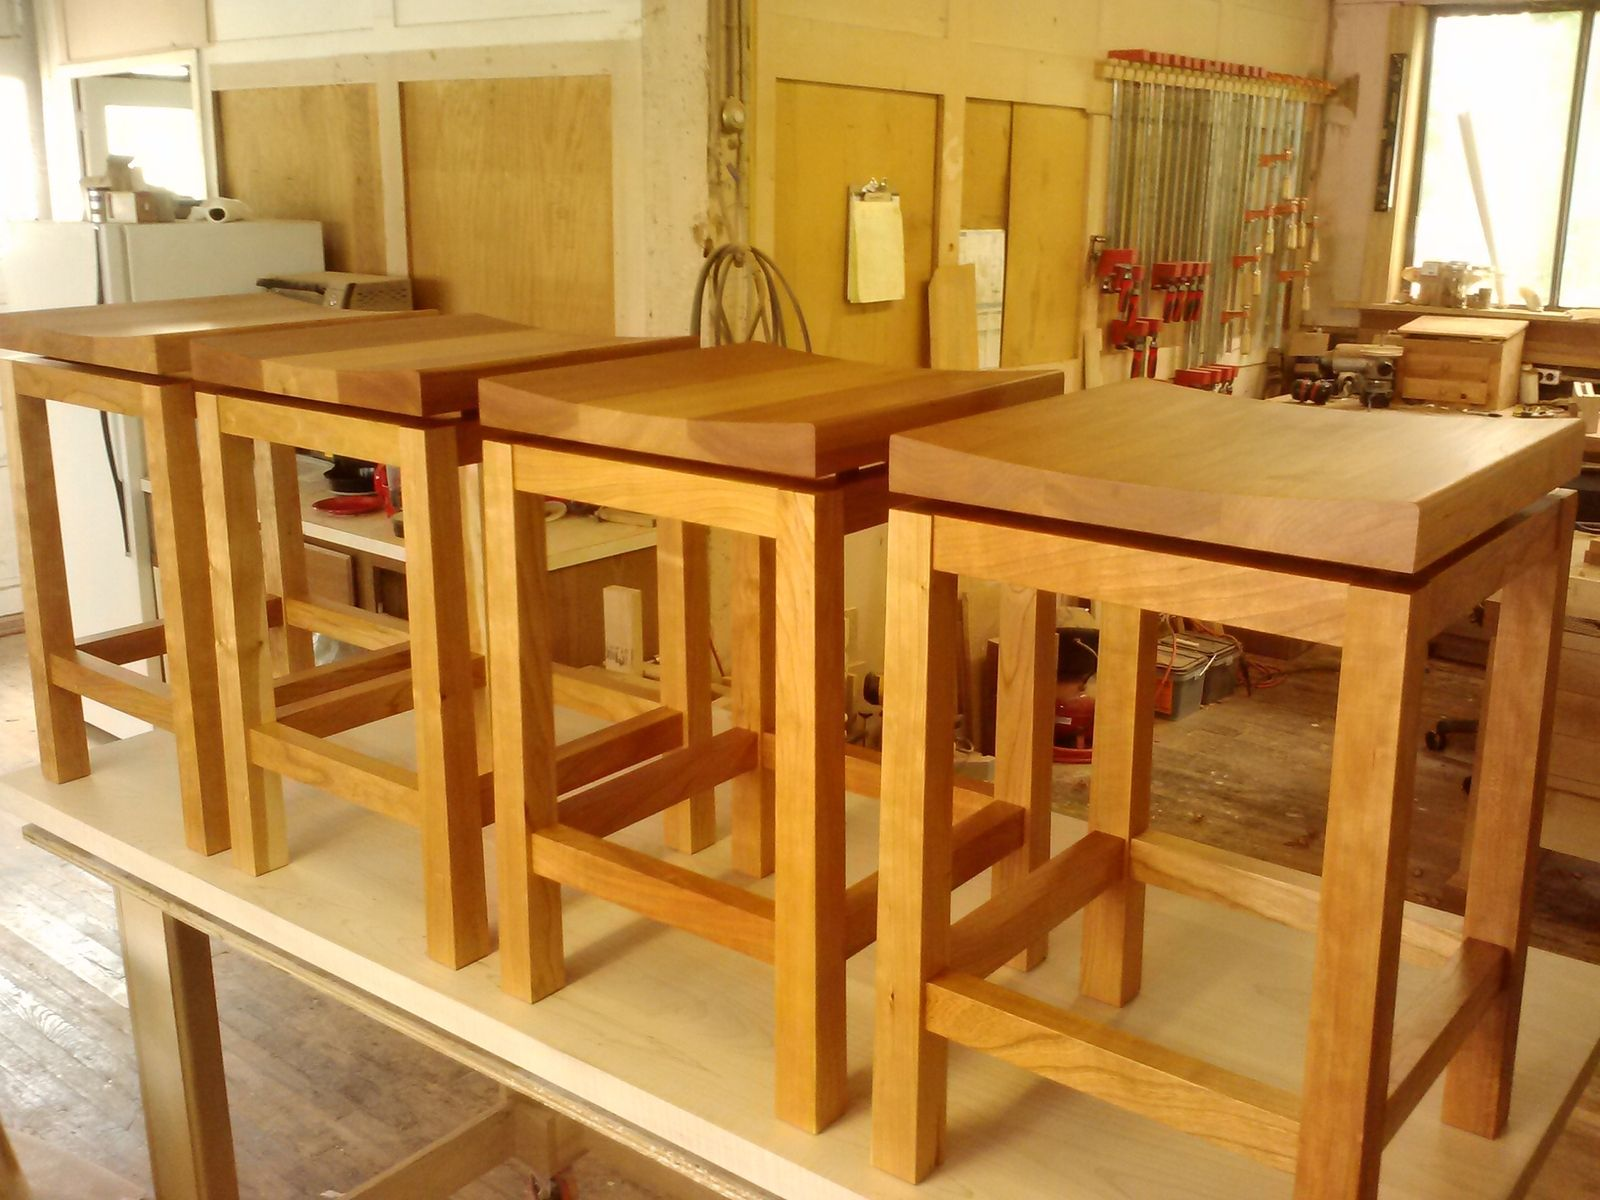 Hand crafted kitchen island height cherry bar stools by - Kitchen island with stools ...